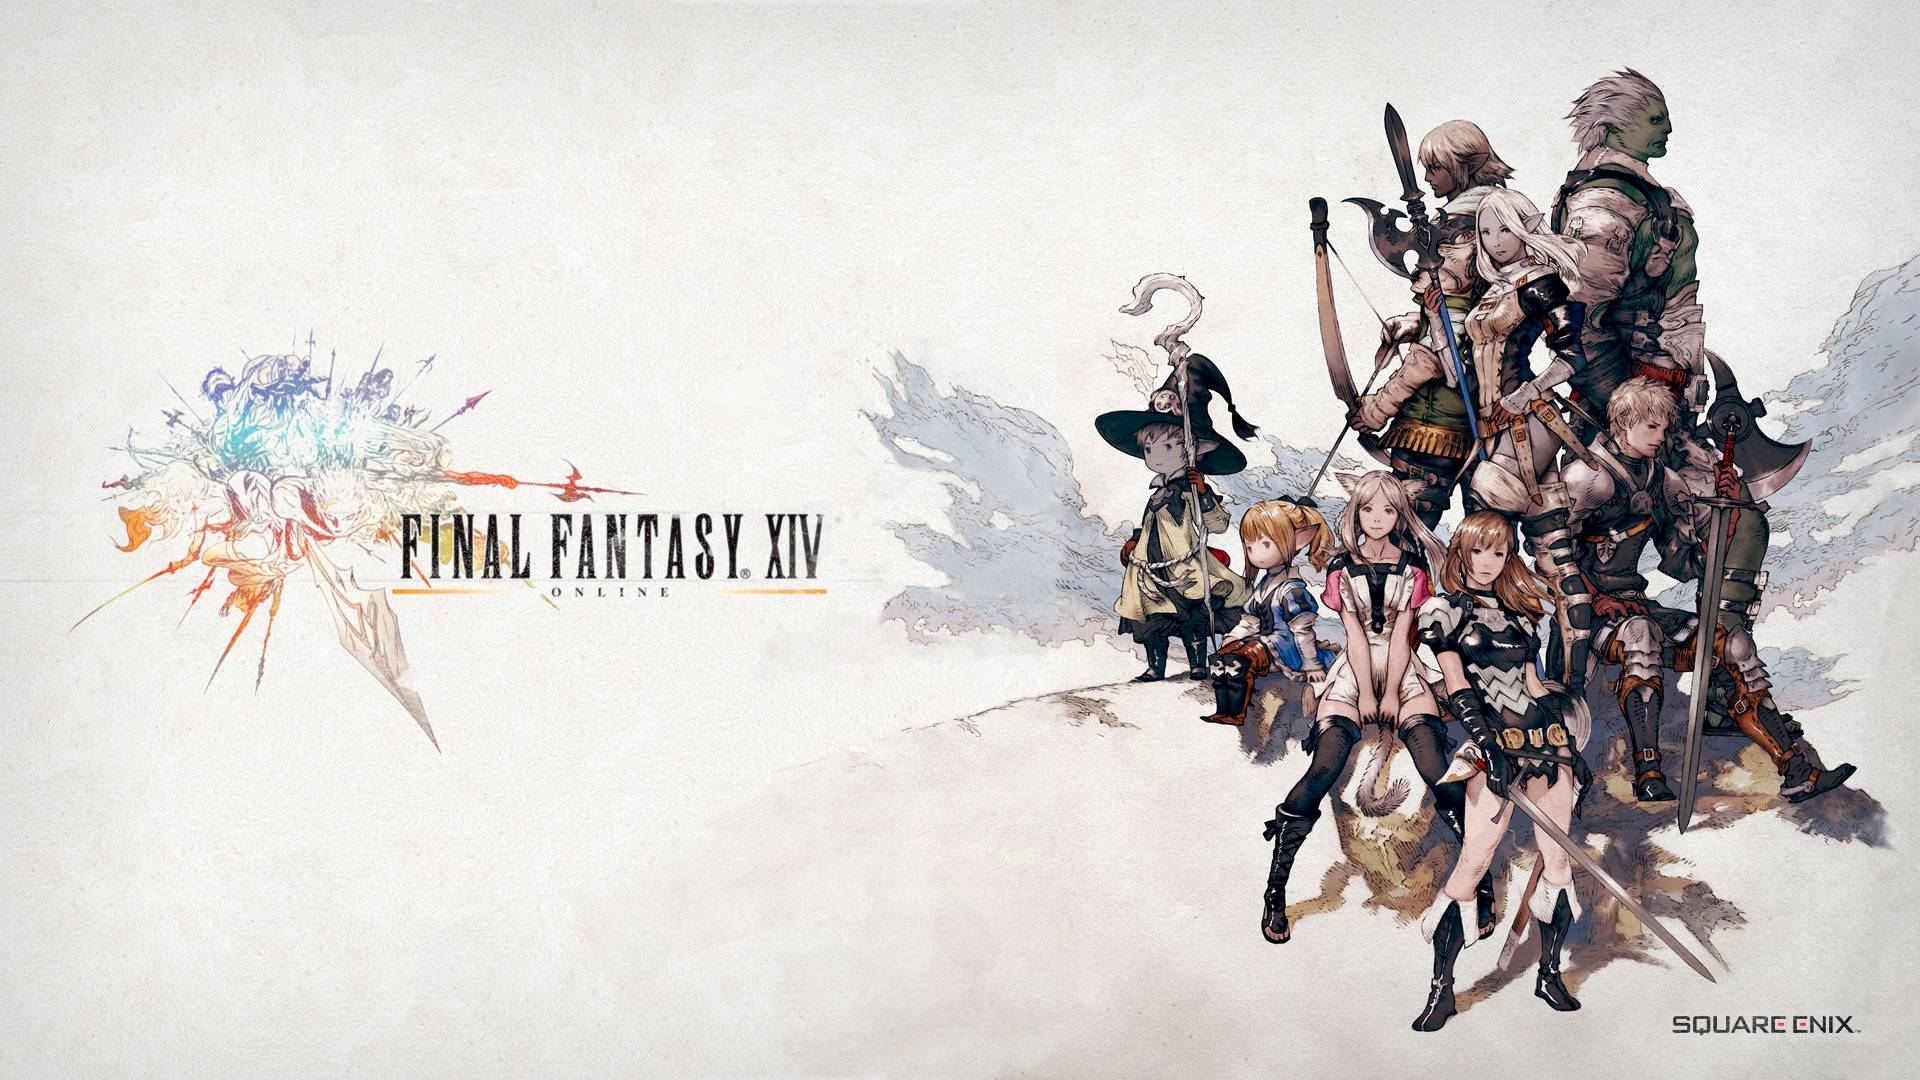 Final Fantasy XIV: FINAL FANTASY XIV Documentary, часть третья: